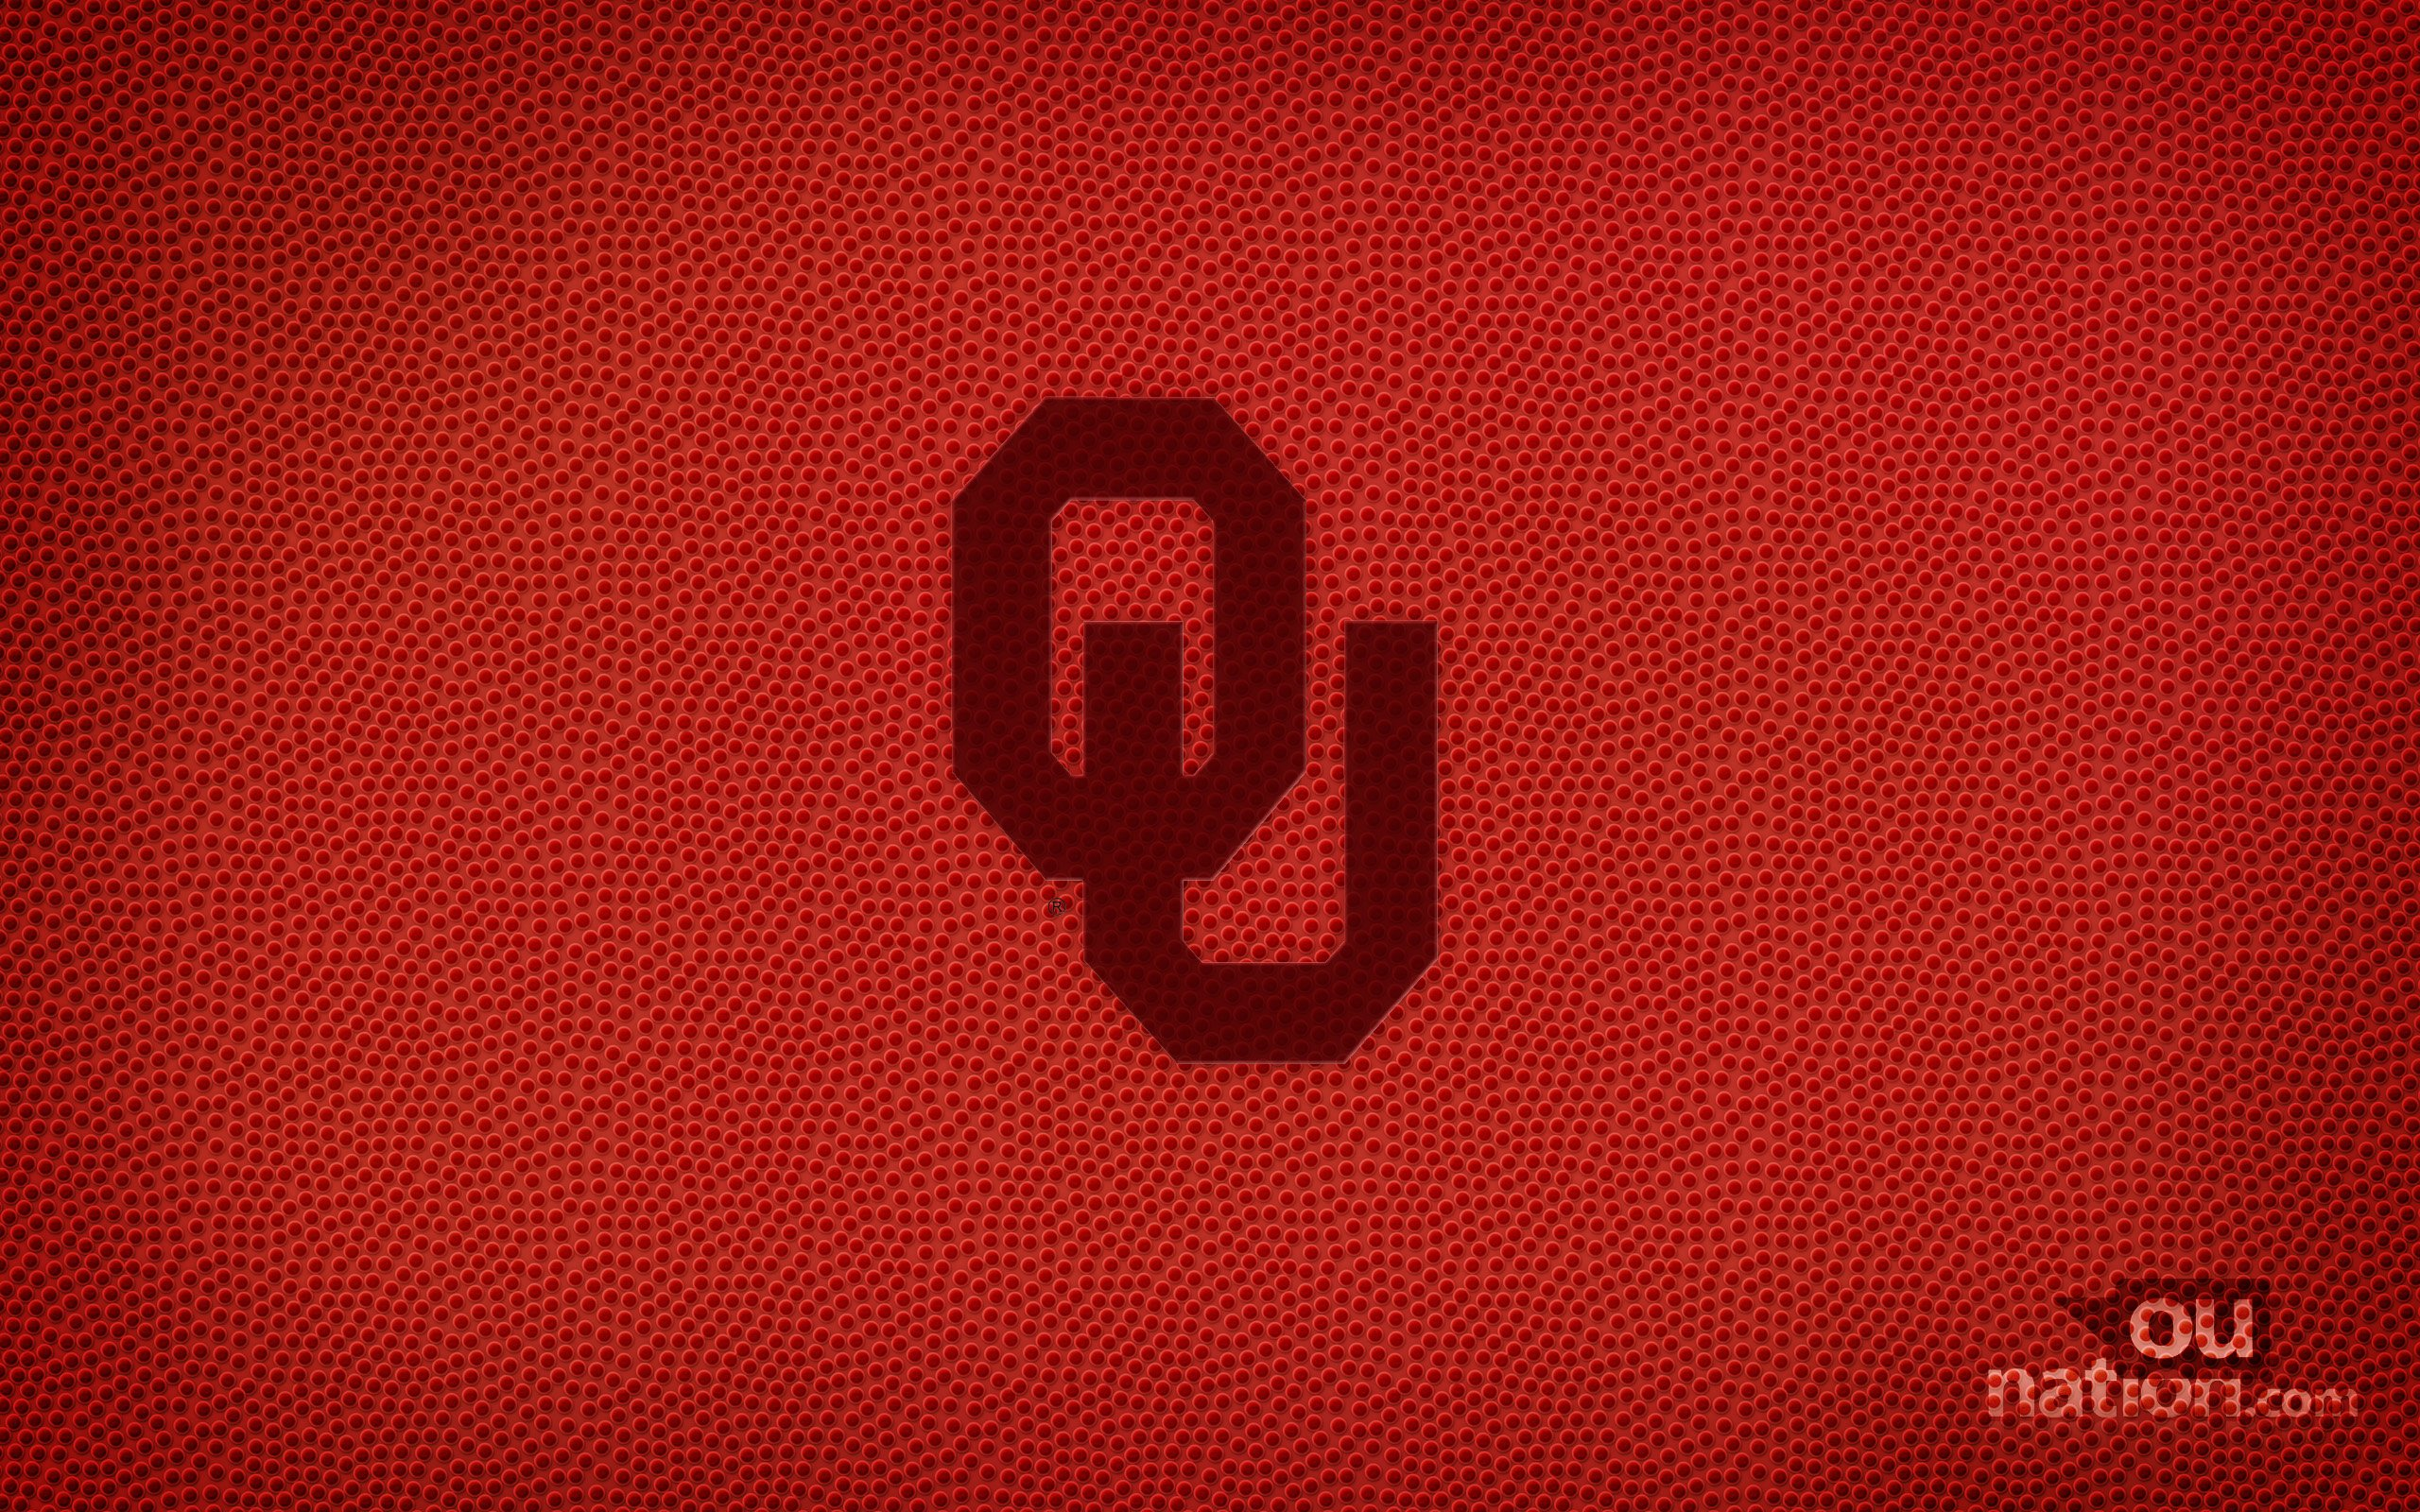 OKLAHOMA SOONERS college football wallpaper | 2560x1600 | 594076 | WallpaperUP